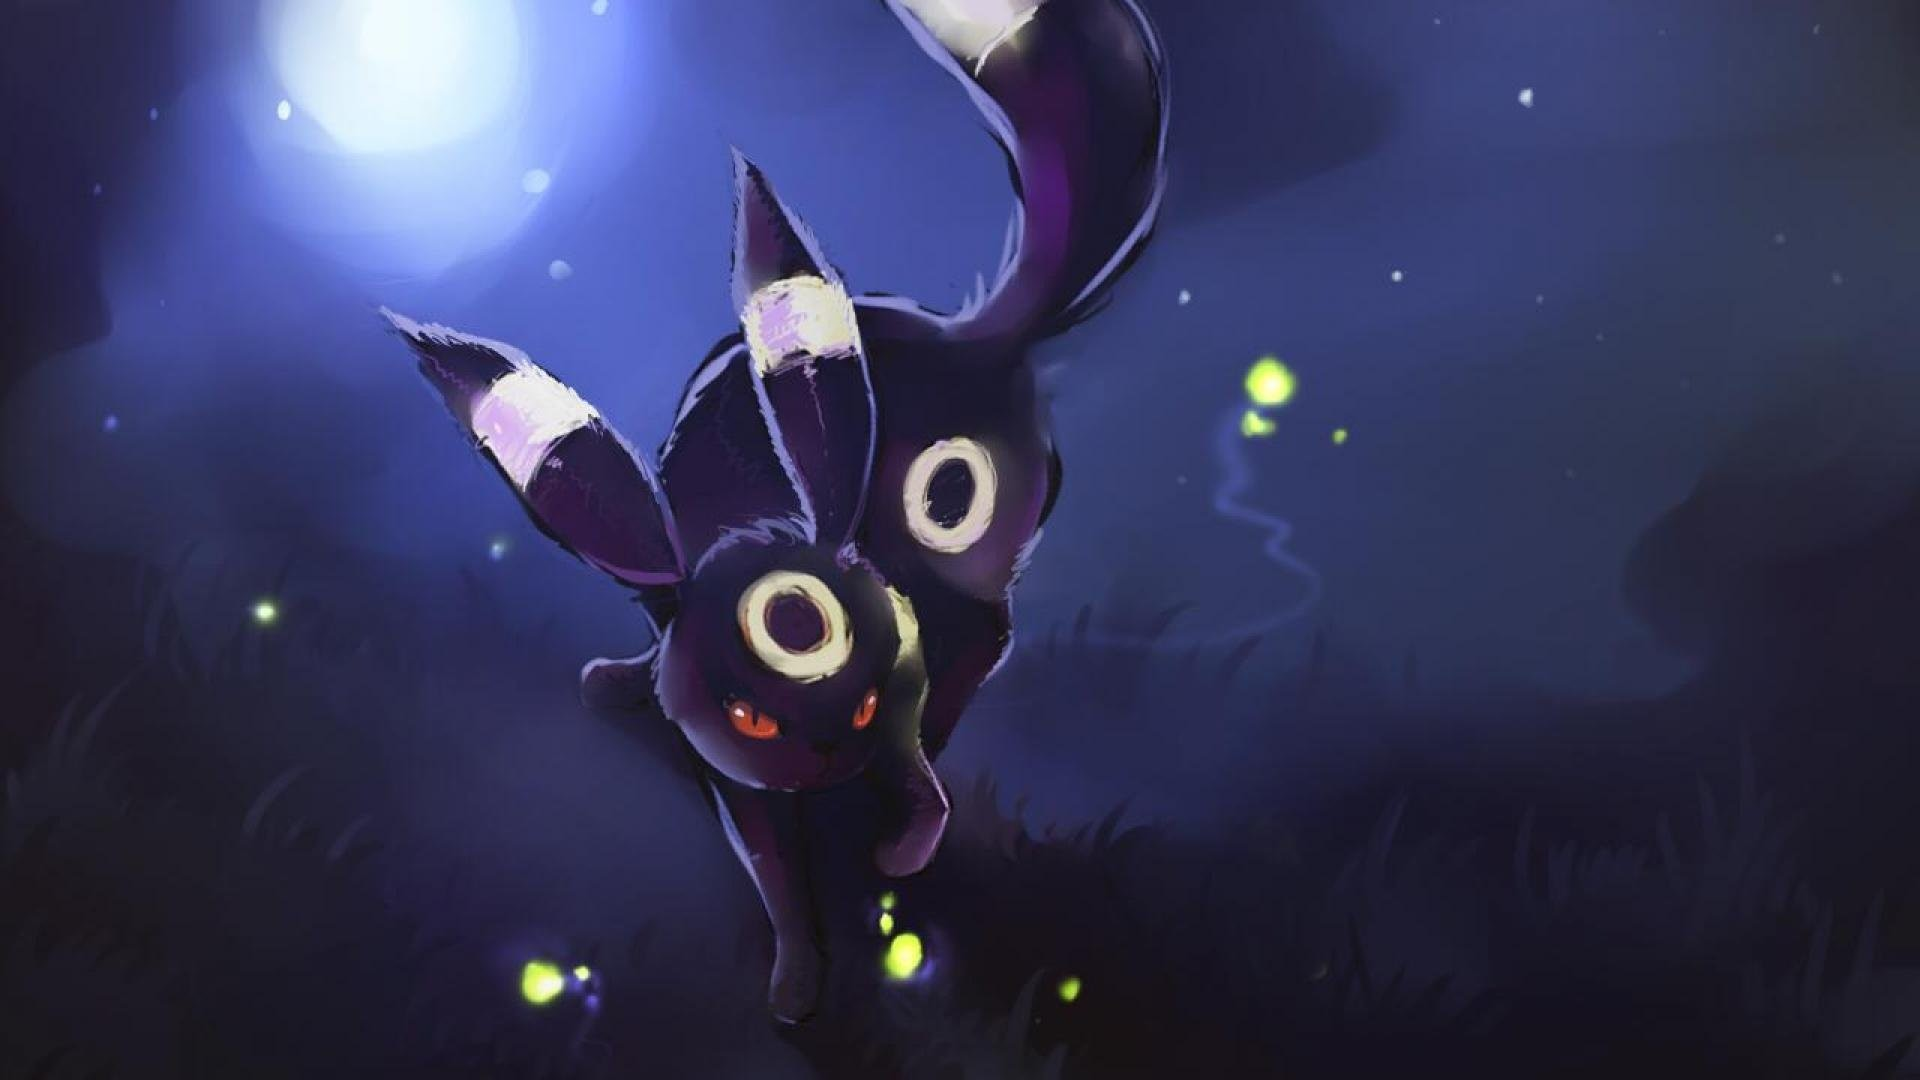 Pokemon Umbreon Wallpaper (75+ images)